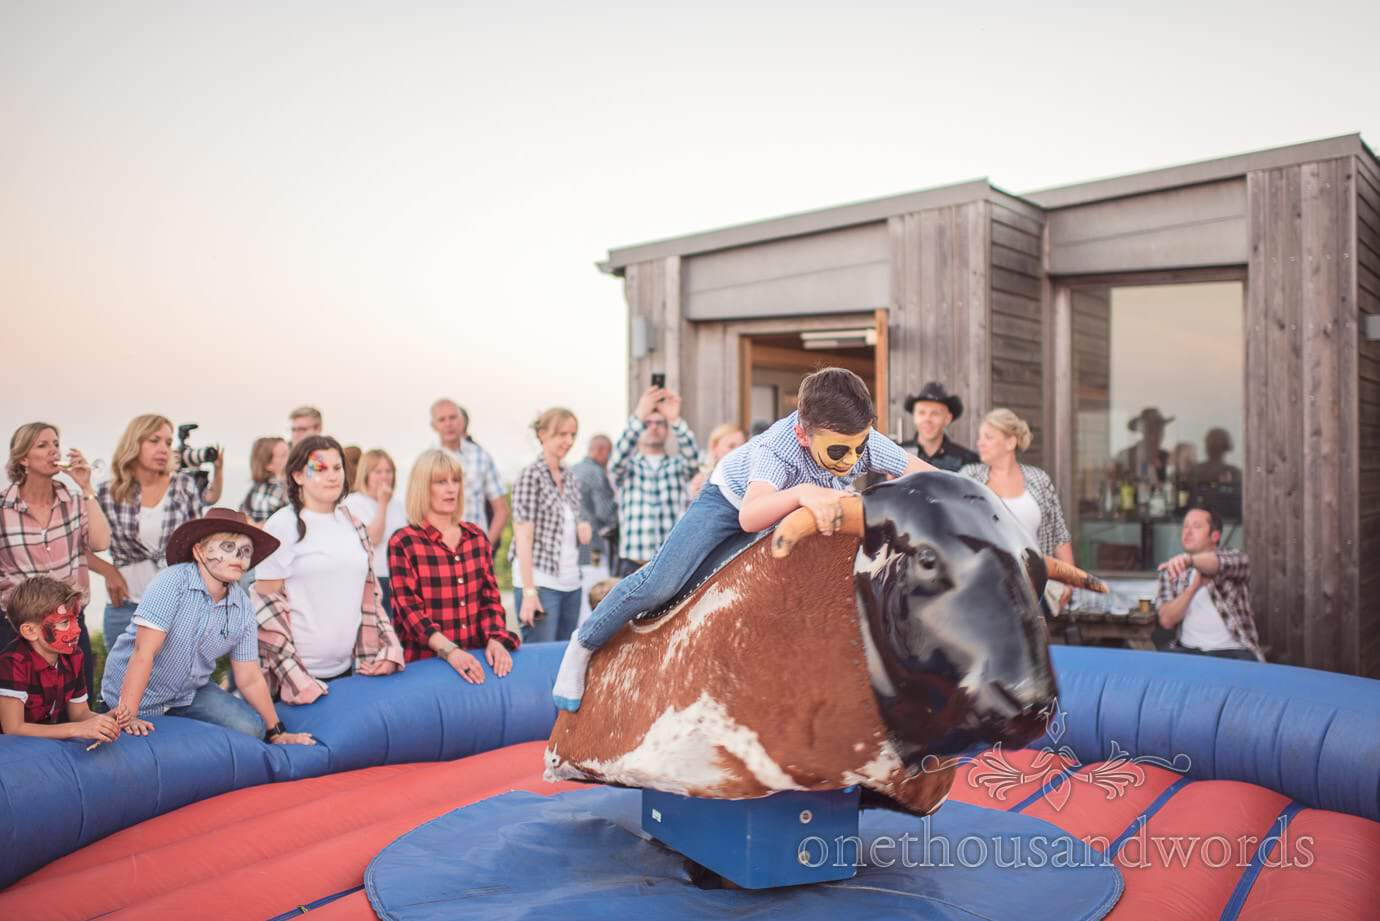 Swanage wedding photographers capture Bucking bronco at cowboy themed wedding